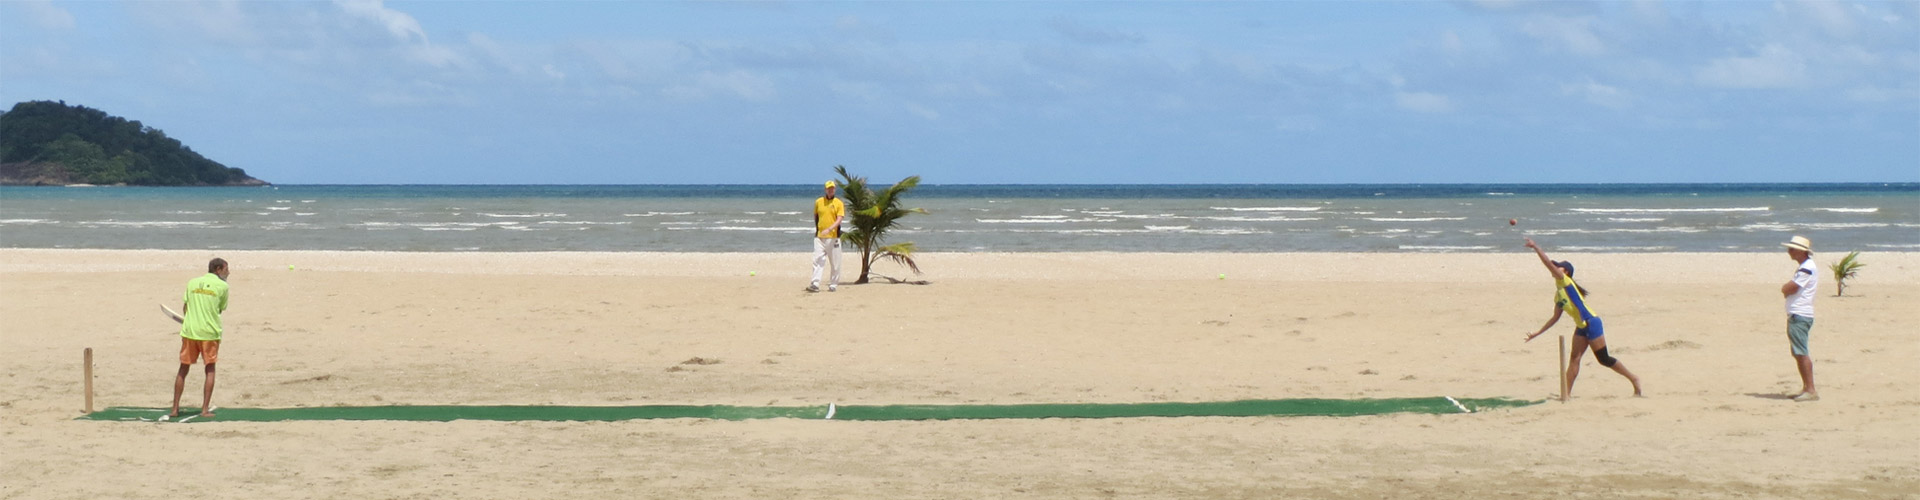 koh chang beach cricket match 1